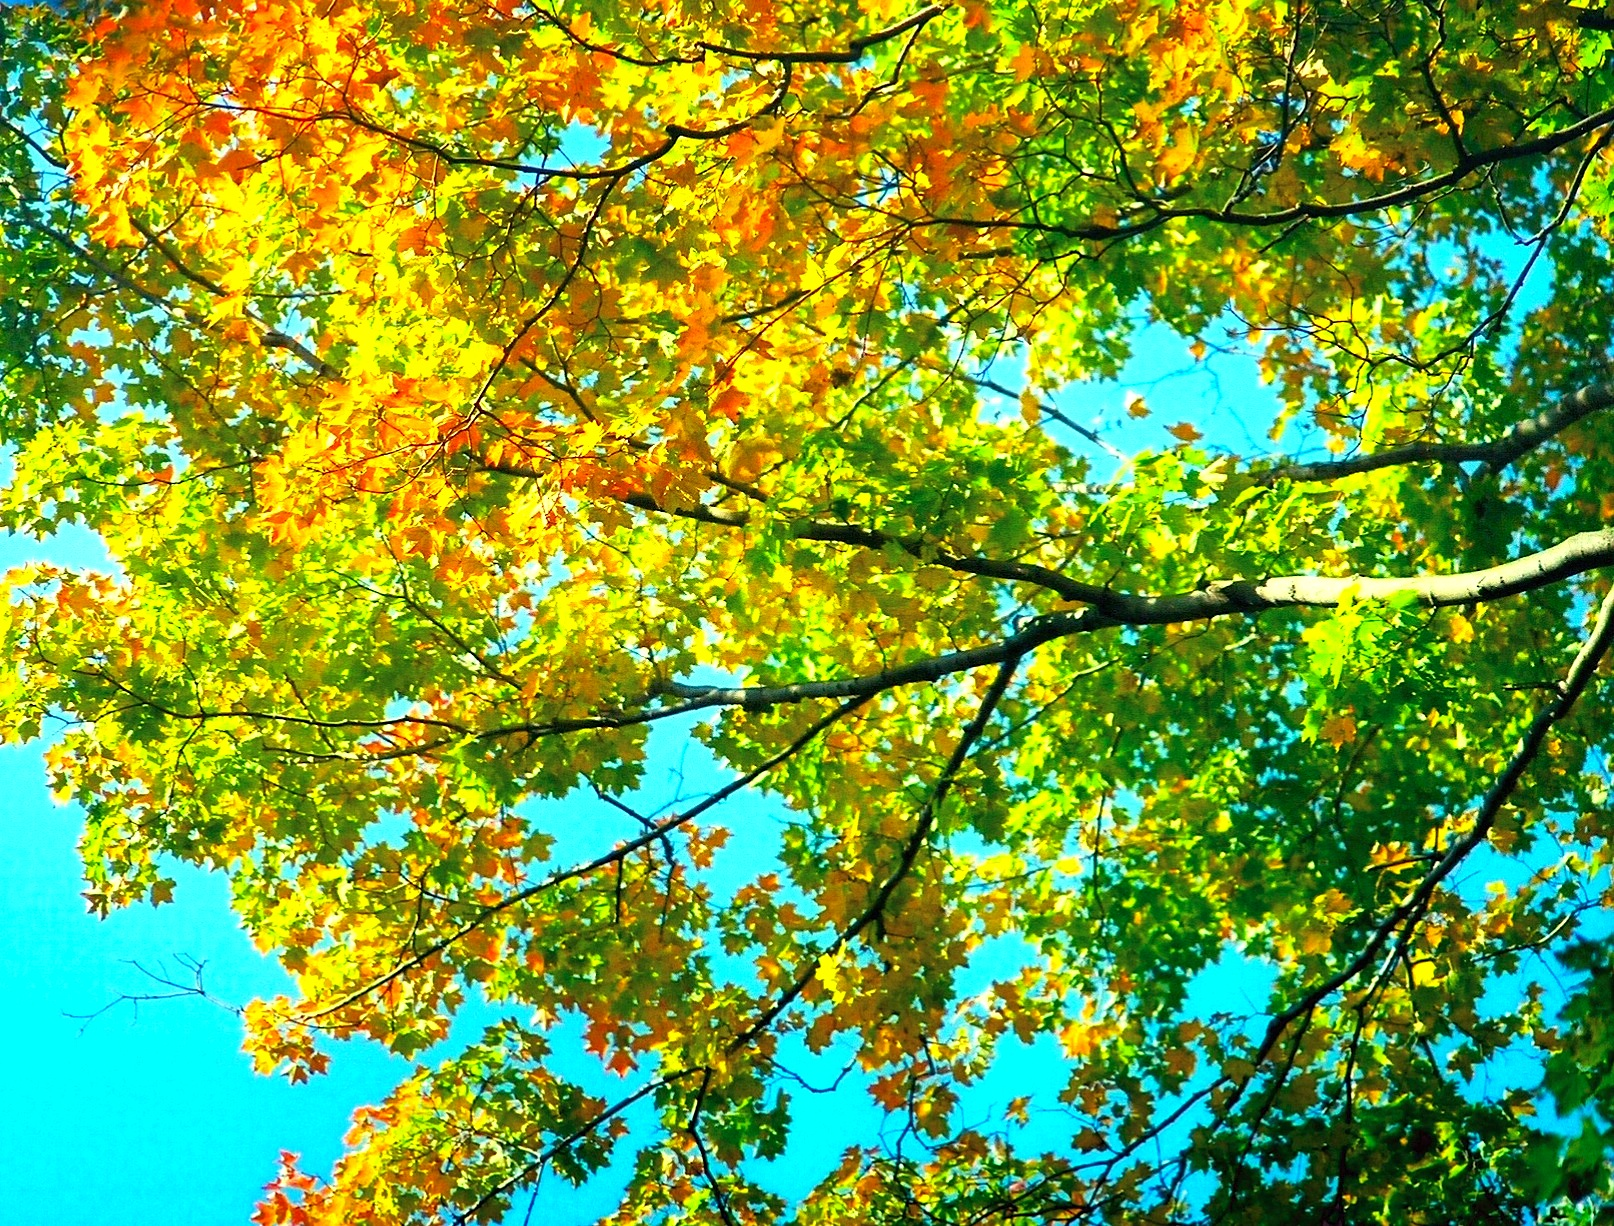 Early Fall Foliage Means Your Tree Is Stressed